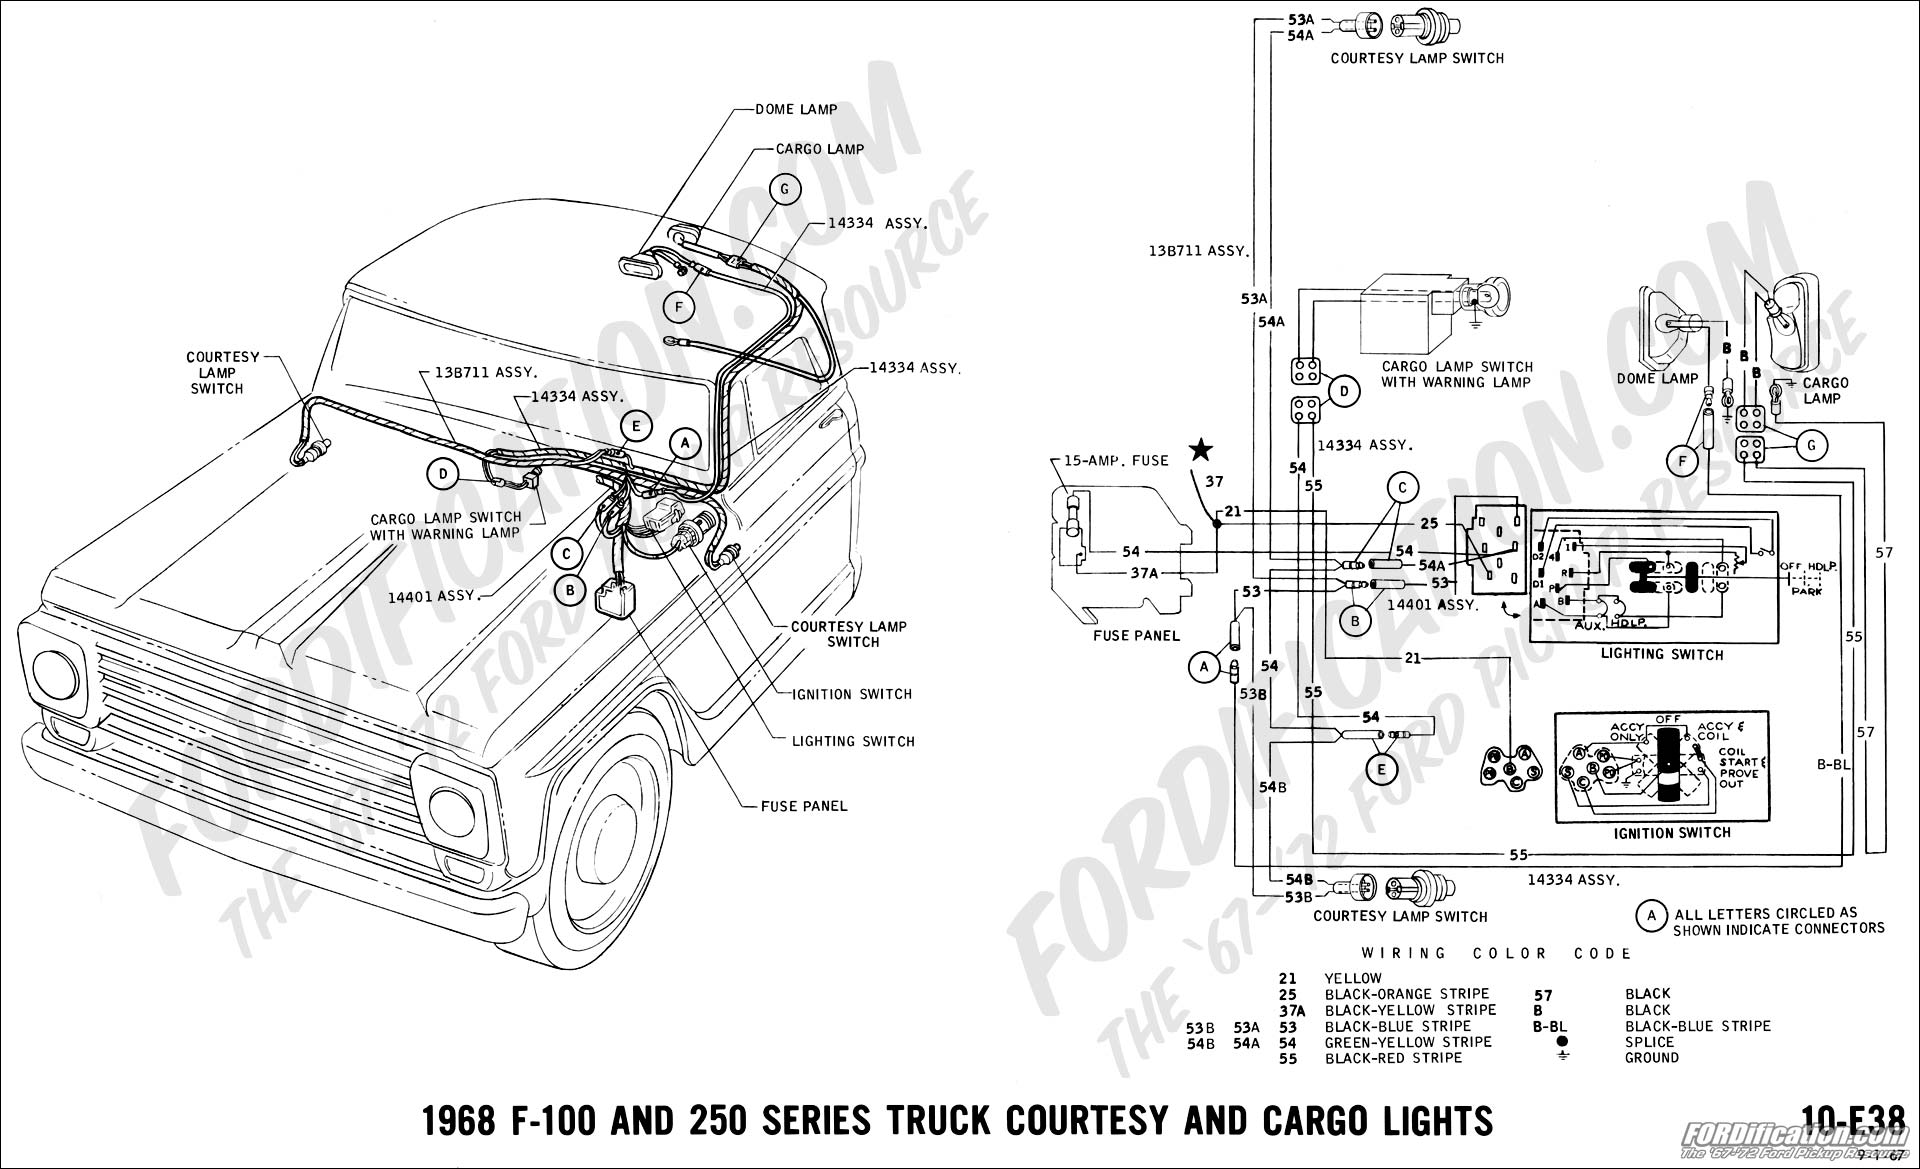 1970 Ford Truck Wiring Harness - Wiring Diagram •